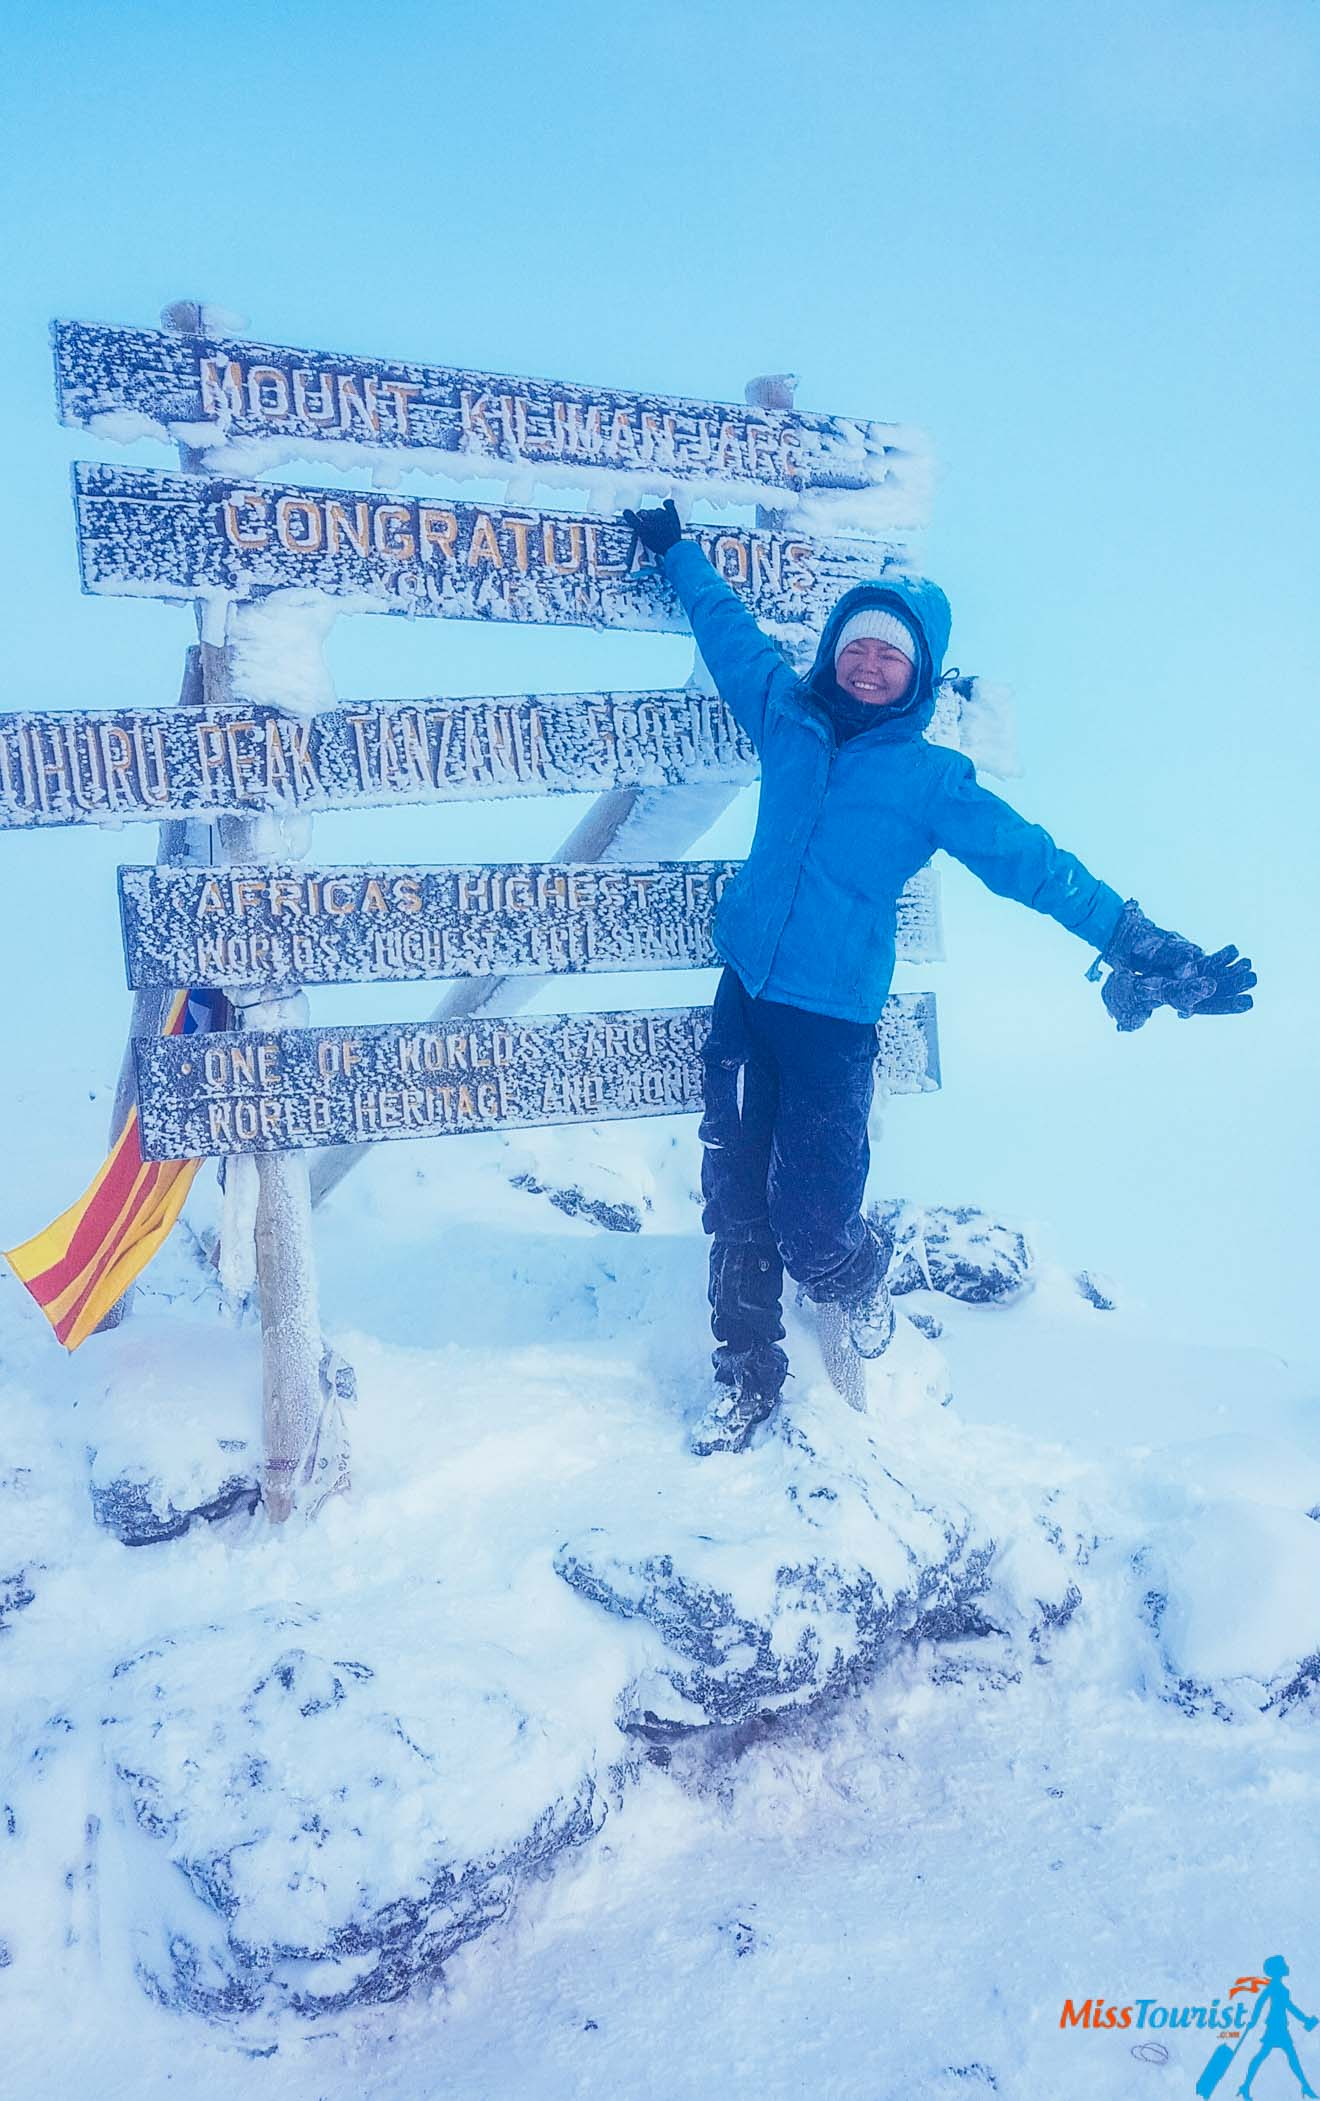 "Climbing Kilimanjaro – 7 Things You Should Know Before You Go Uhuru Peak"" class=""wp-image-27907"" width=""266"" height=""424"" srcset=""https://misstourist.com/wp-content/uploads/2019/04/Climbing-Kilimanjaro-–-7-Things-You-Should-Know-Before-You-Go-Uhuru-Peak-660x1051@2x.jpg 1320w, https://misstourist.com/wp-content/uploads/2019/04/Climbing-Kilimanjaro-–-7-Things-You-Should-Know-Before-You-Go-Uhuru-Peak-188x300.jpg 188w, https://misstourist.com/wp-content/uploads/2019/04/Climbing-Kilimanjaro-–-7-Things-You-Should-Know-Before-You-Go-Uhuru-Peak-400x637.jpg 400w, https://misstourist.com/wp-content/uploads/2019/04/Climbing-Kilimanjaro-–-7-Things-You-Should-Know-Before-You-Go-Uhuru-Peak-660x1051.jpg 660w, https://misstourist.com/wp-content/uploads/2019/04/Climbing-Kilimanjaro-–-7-Things-You-Should-Know-Before-You-Go-Uhuru-Peak-320x509.jpg 320w, https://misstourist.com/wp-content/uploads/2019/04/Climbing-Kilimanjaro-–-7-Things-You-Should-Know-Before-You-Go-Uhuru-Peak-188x300@2x.jpg 376w, https://misstourist.com/wp-content/uploads/2019/04/Climbing-Kilimanjaro-–-7-Things-You-Should-Know-Before-You-Go-Uhuru-Peak-400x637@2x.jpg 800w, https://misstourist.com/wp-content/uploads/2019/04/Climbing-Kilimanjaro-–-7-Things-You-Should-Know-Before-You-Go-Uhuru-Peak-320x509@2x.jpg 640w"" sizes=""(max-width: 266px) 100vw, 266px"